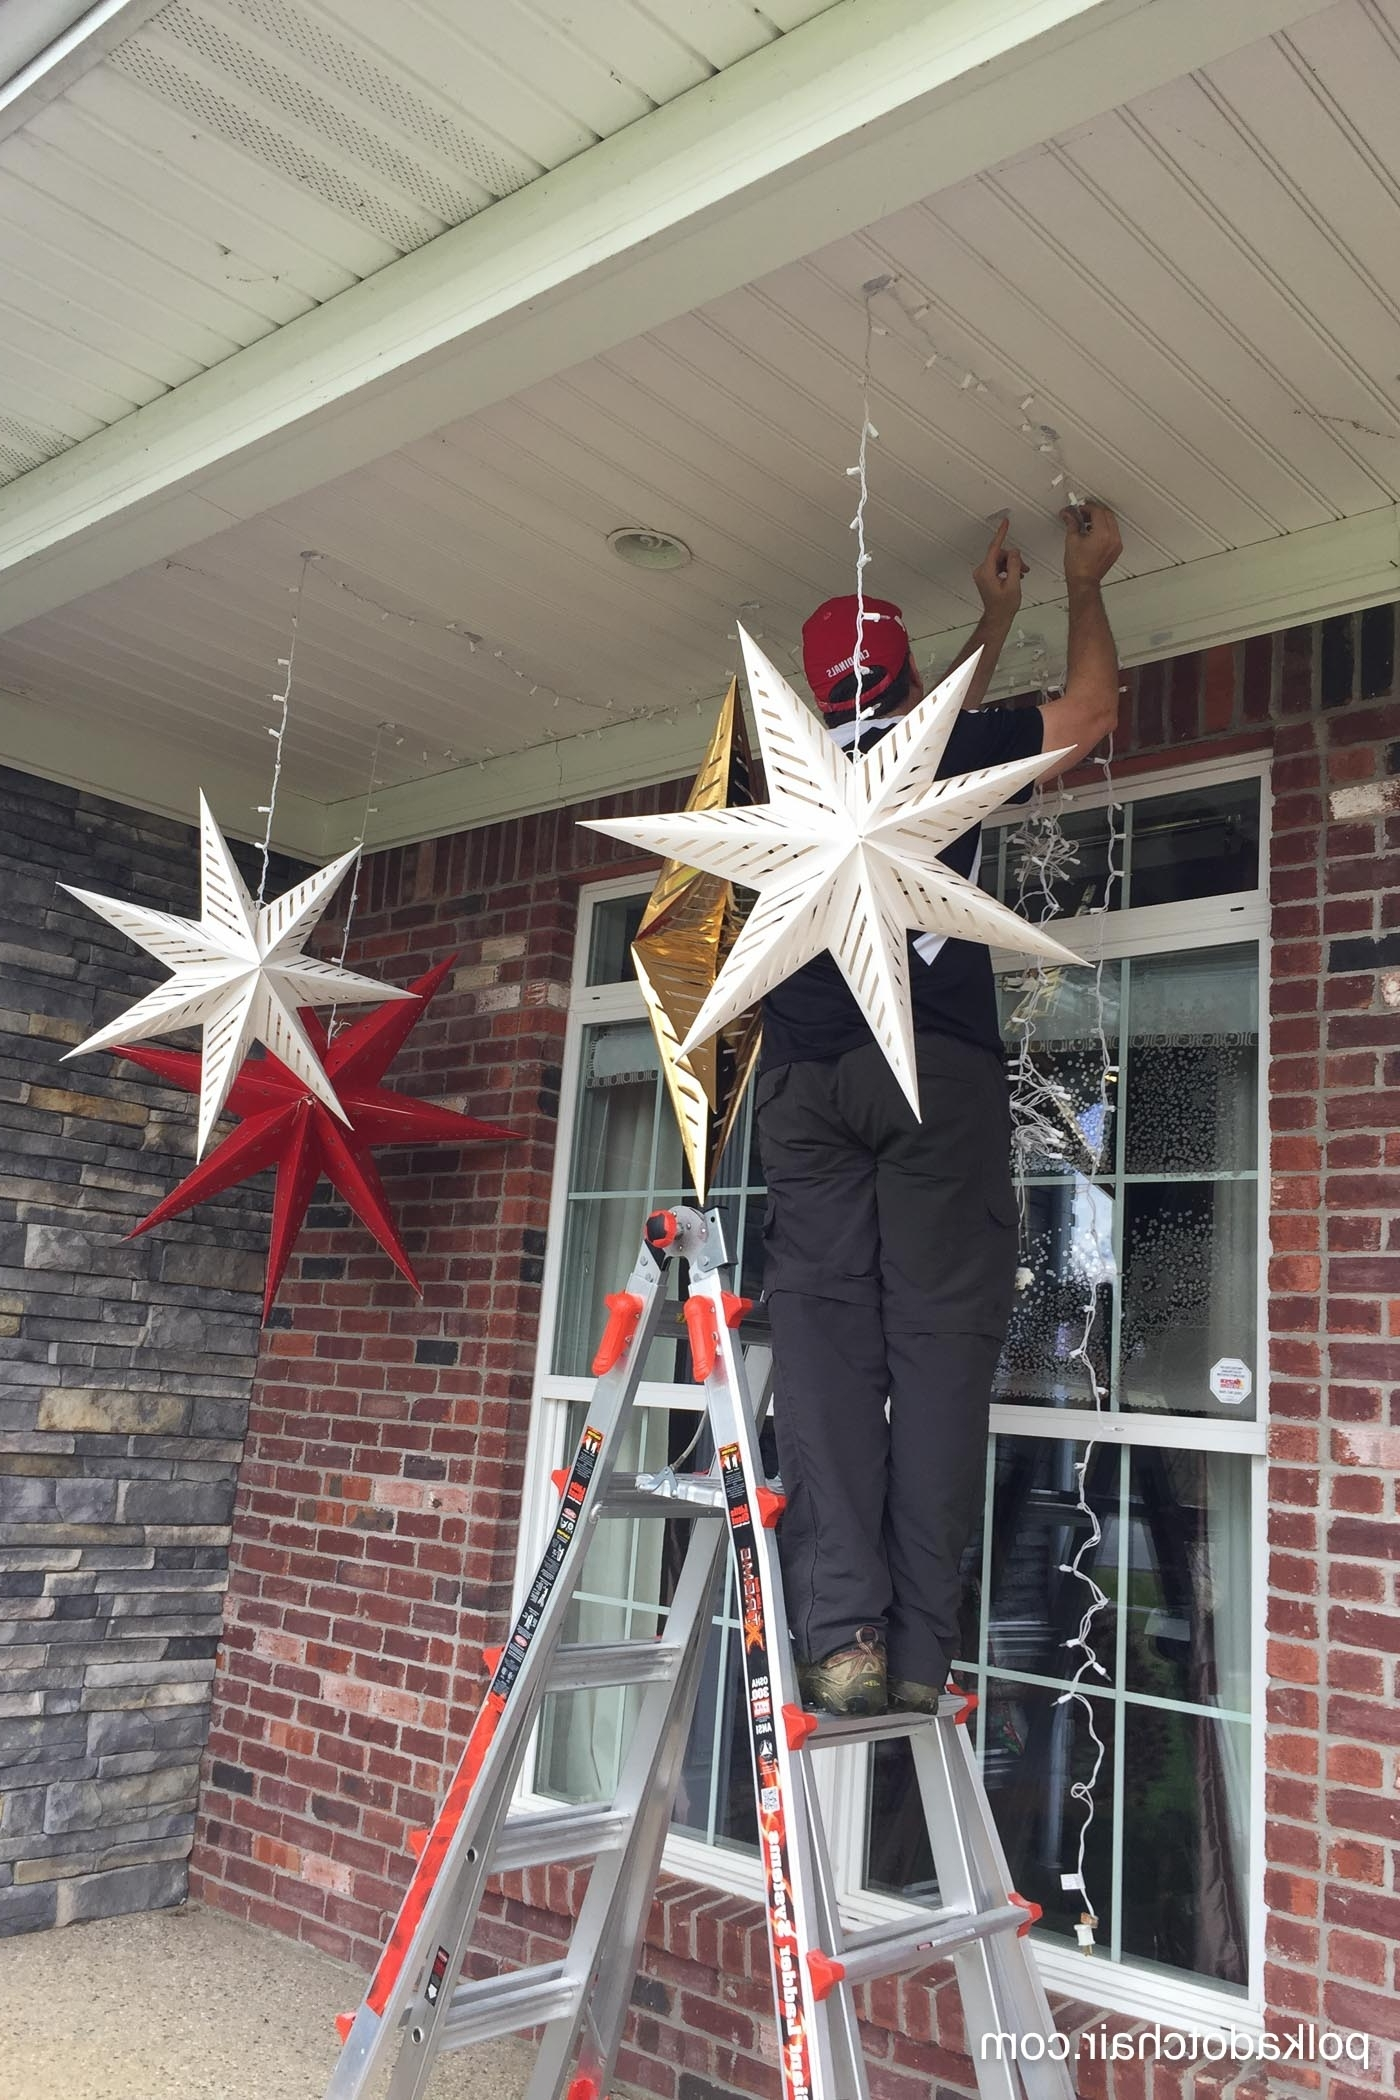 Widely Used Outdoor Hanging Star Lanterns Pertaining To Hanging Star Lanterns; A Christmas Front Porch Decorating Idea – The (View 5 of 20)